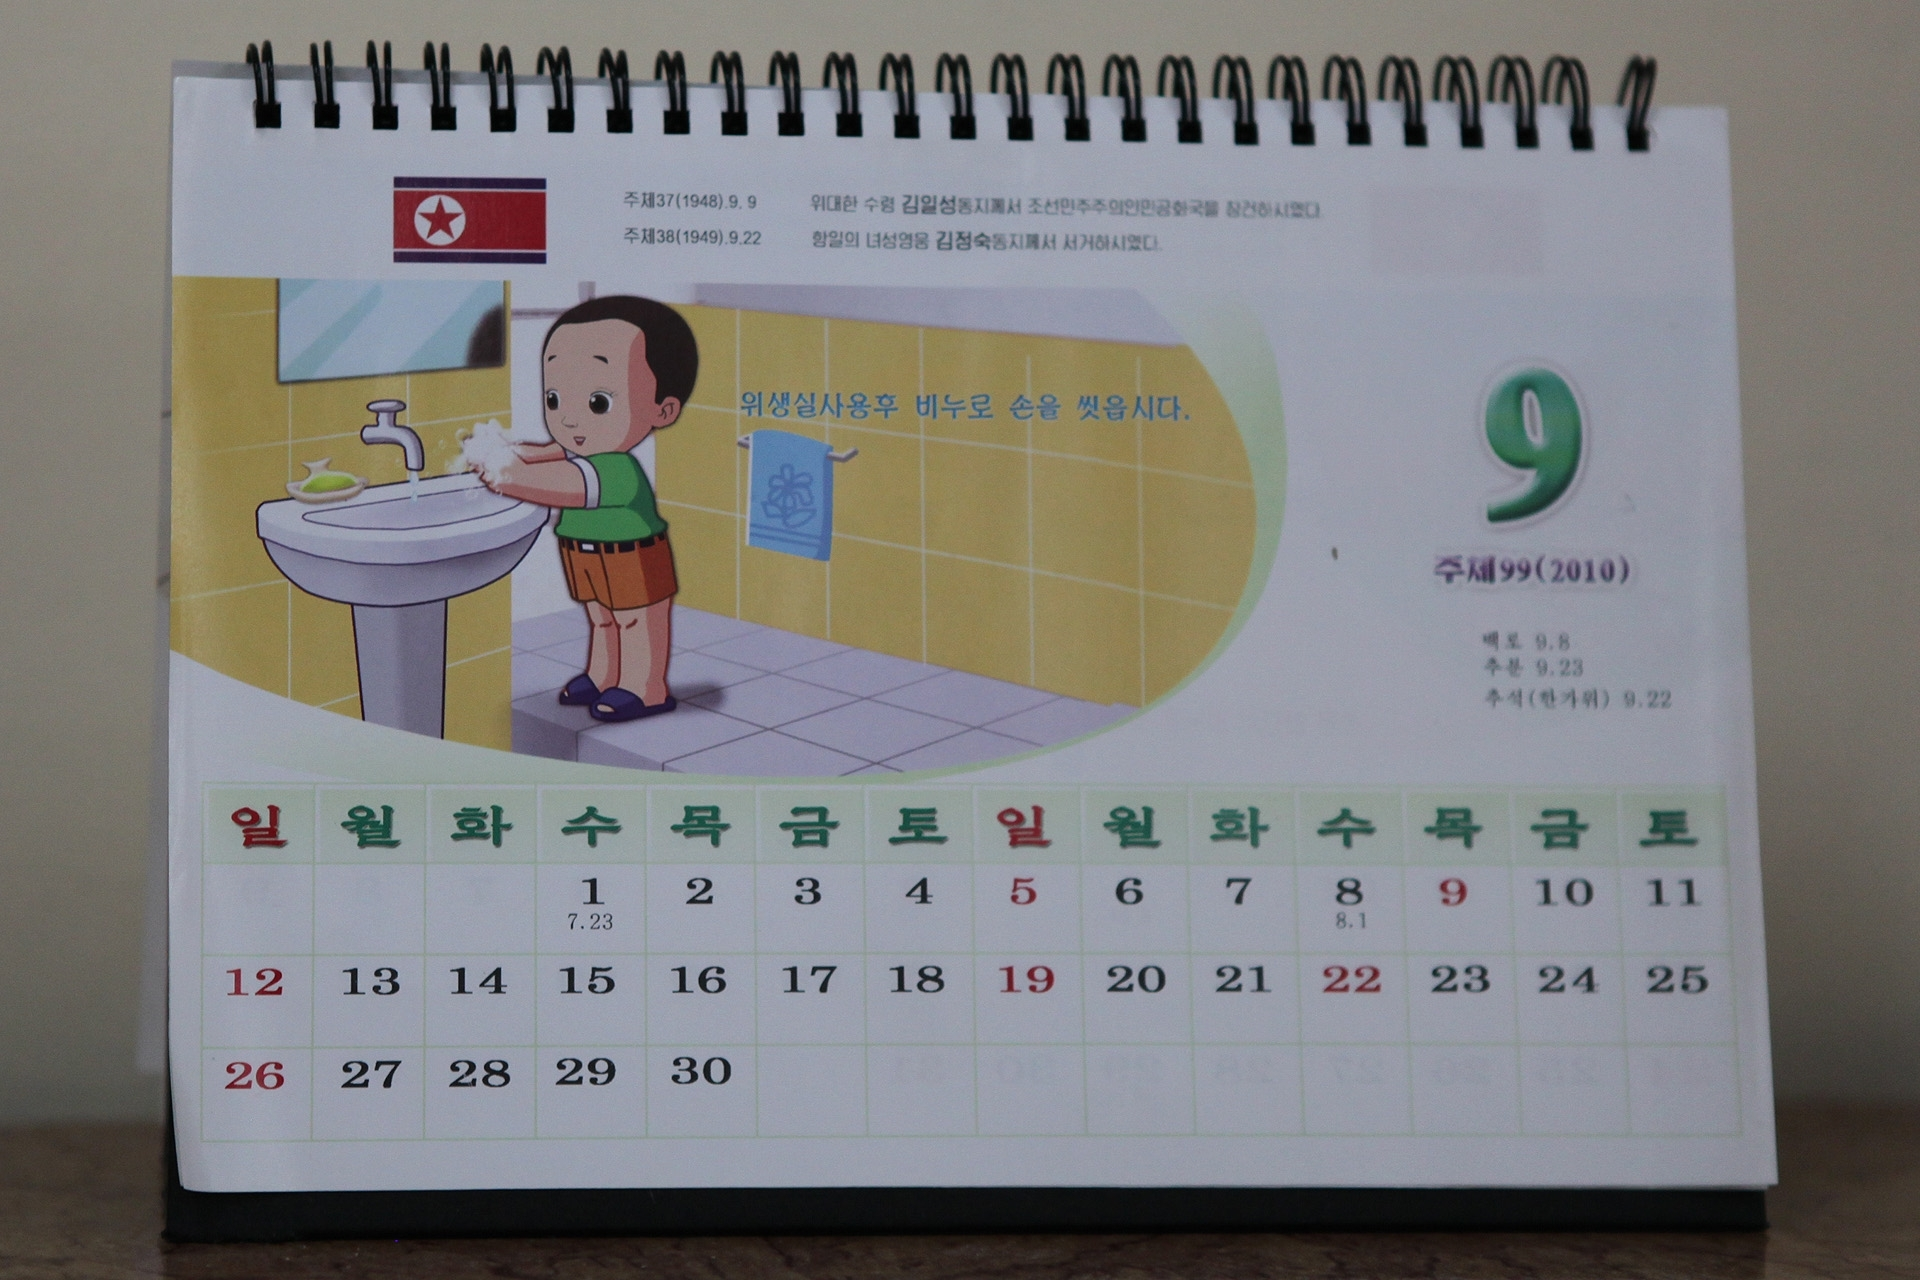 North Korean Calendar - Wikipedia